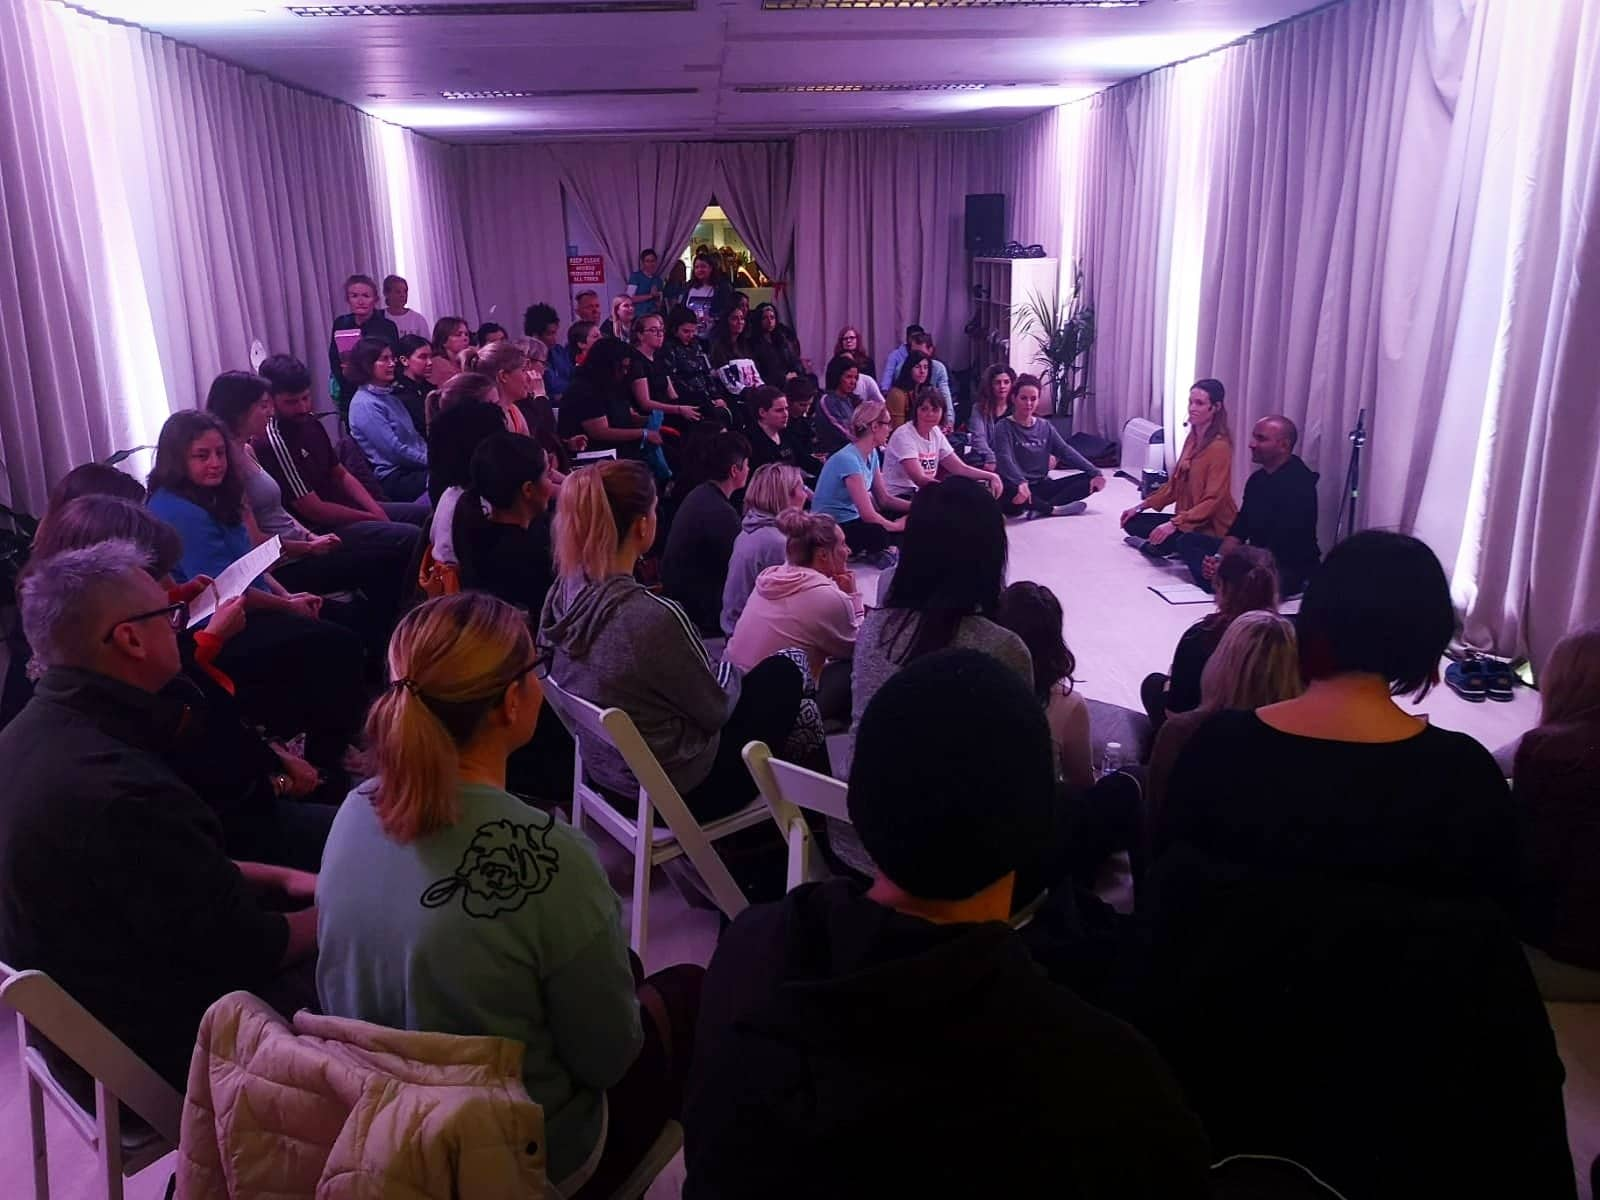 Niraj leads a sold out meditation session